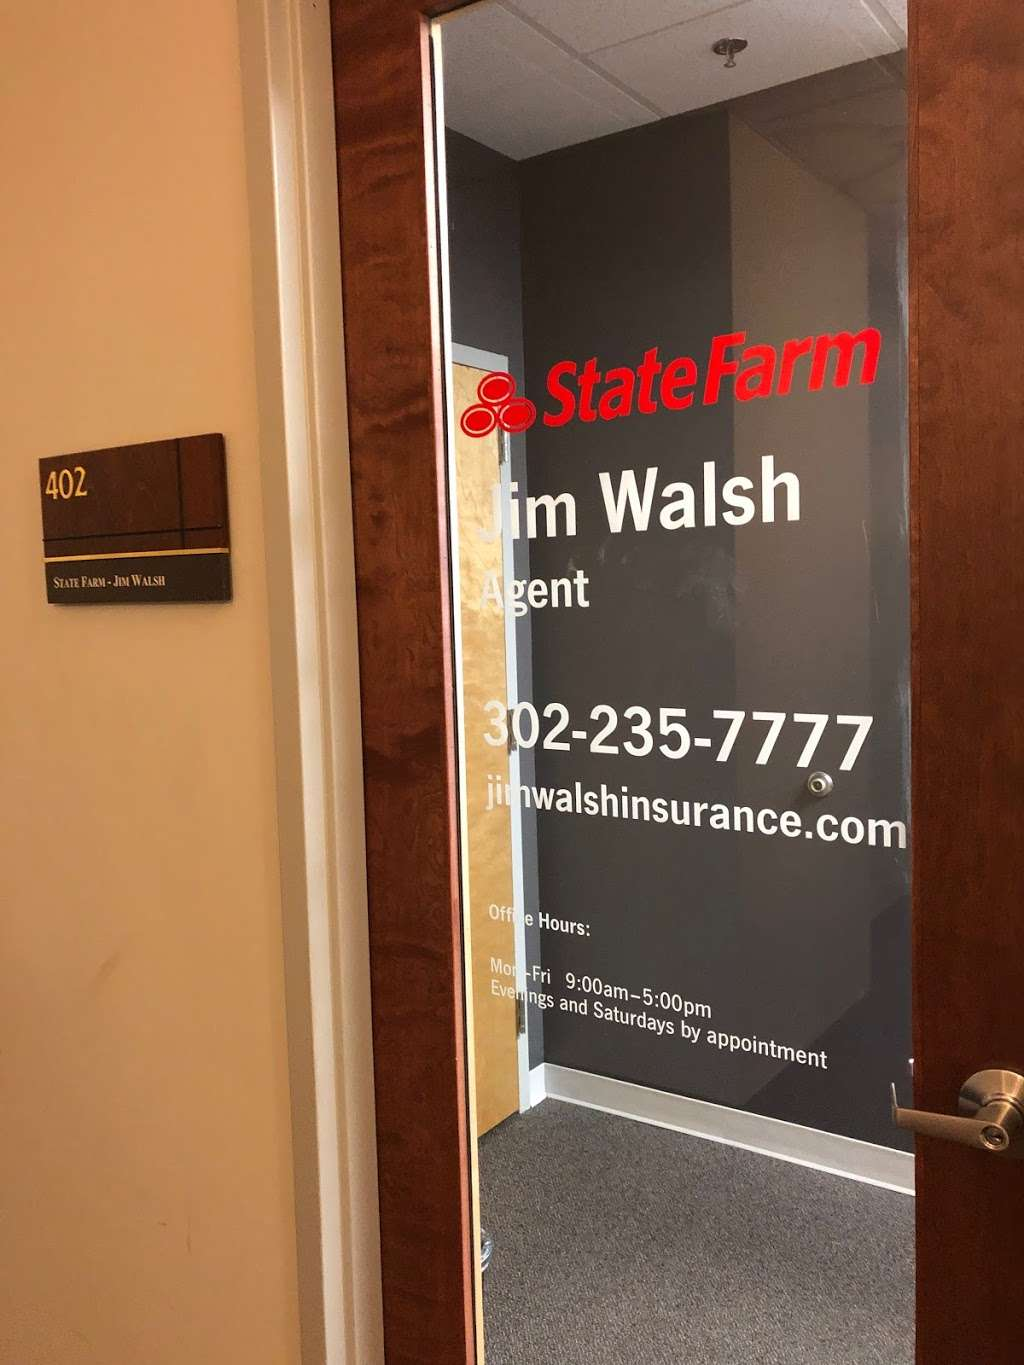 Jim Walsh - State Farm Insurance Agent - insurance agency  | Photo 4 of 10 | Address: 1013 Centre Rd #402, Wilmington, DE 19805, USA | Phone: (302) 235-7777